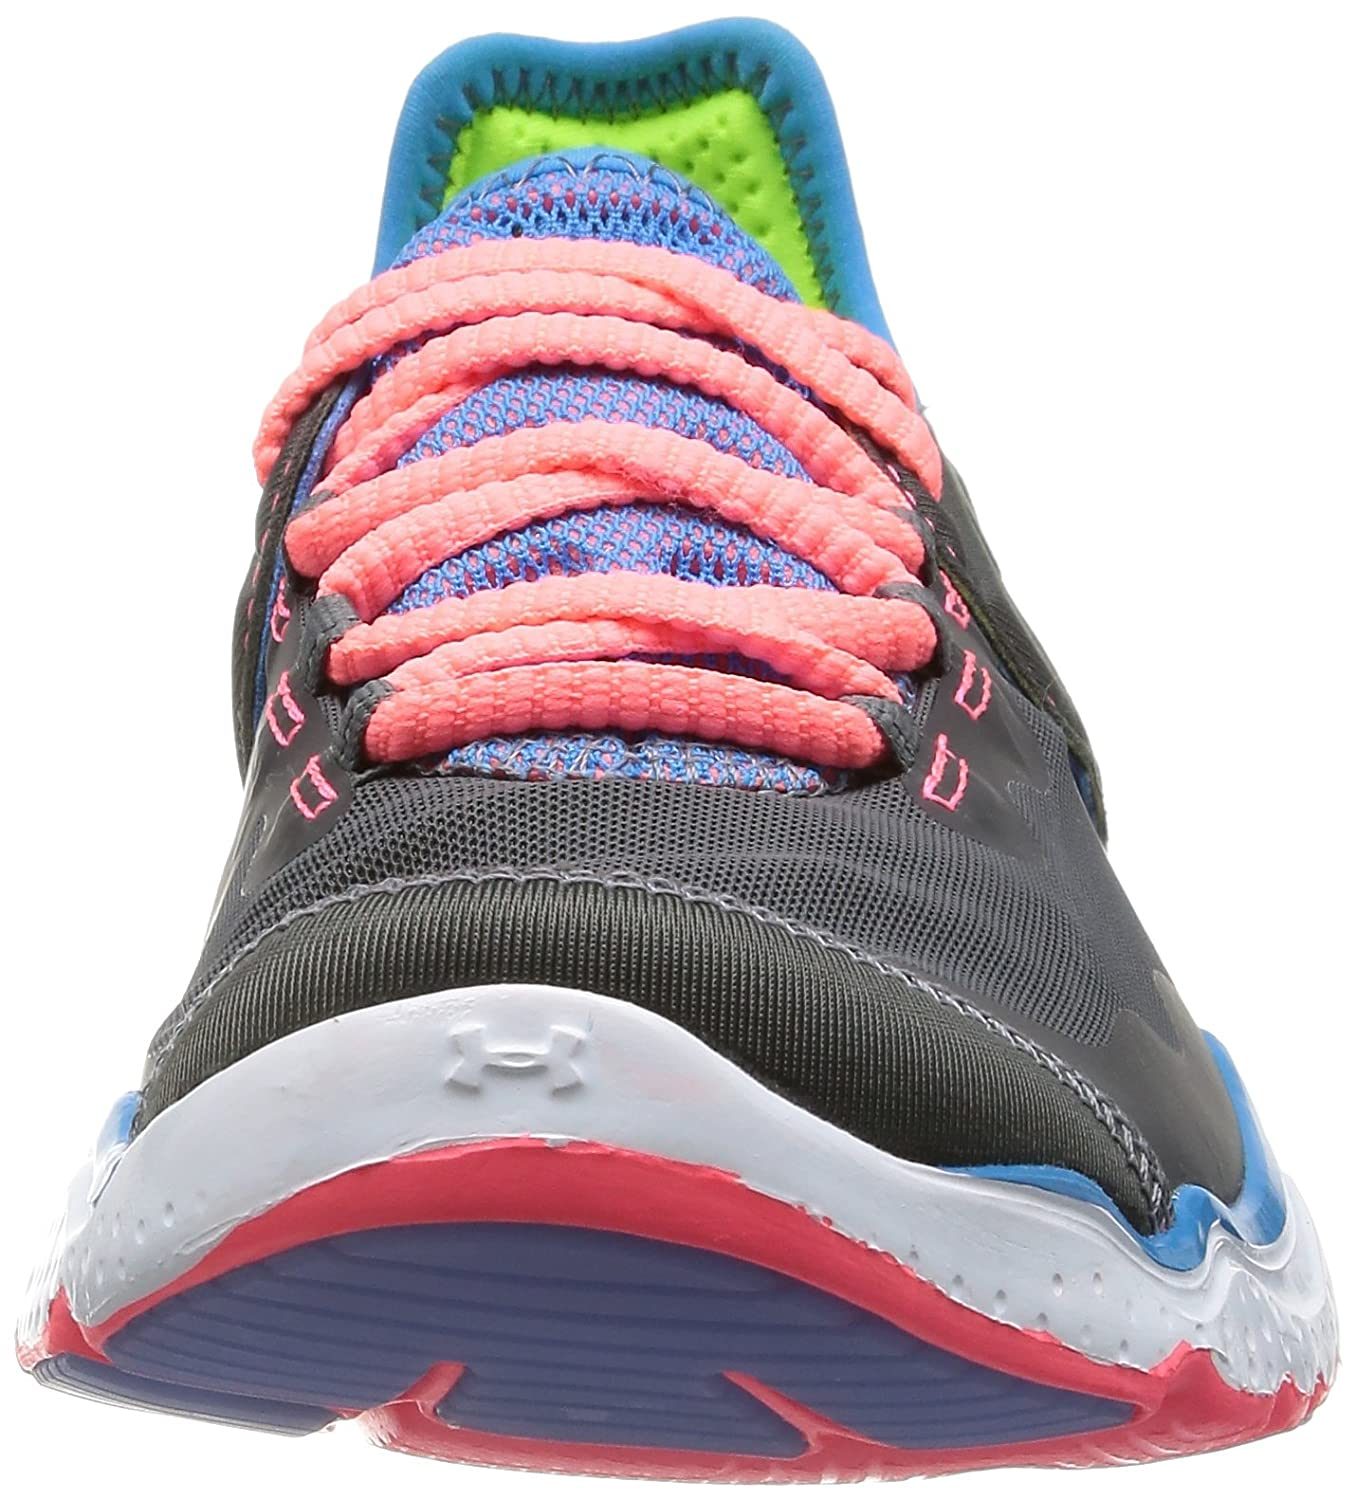 huge discount 10cfb e8128 ... Under Armour Damen W Charge Charge Charge Rc 2 Laufschuhe schwarz  2cbc89 ...